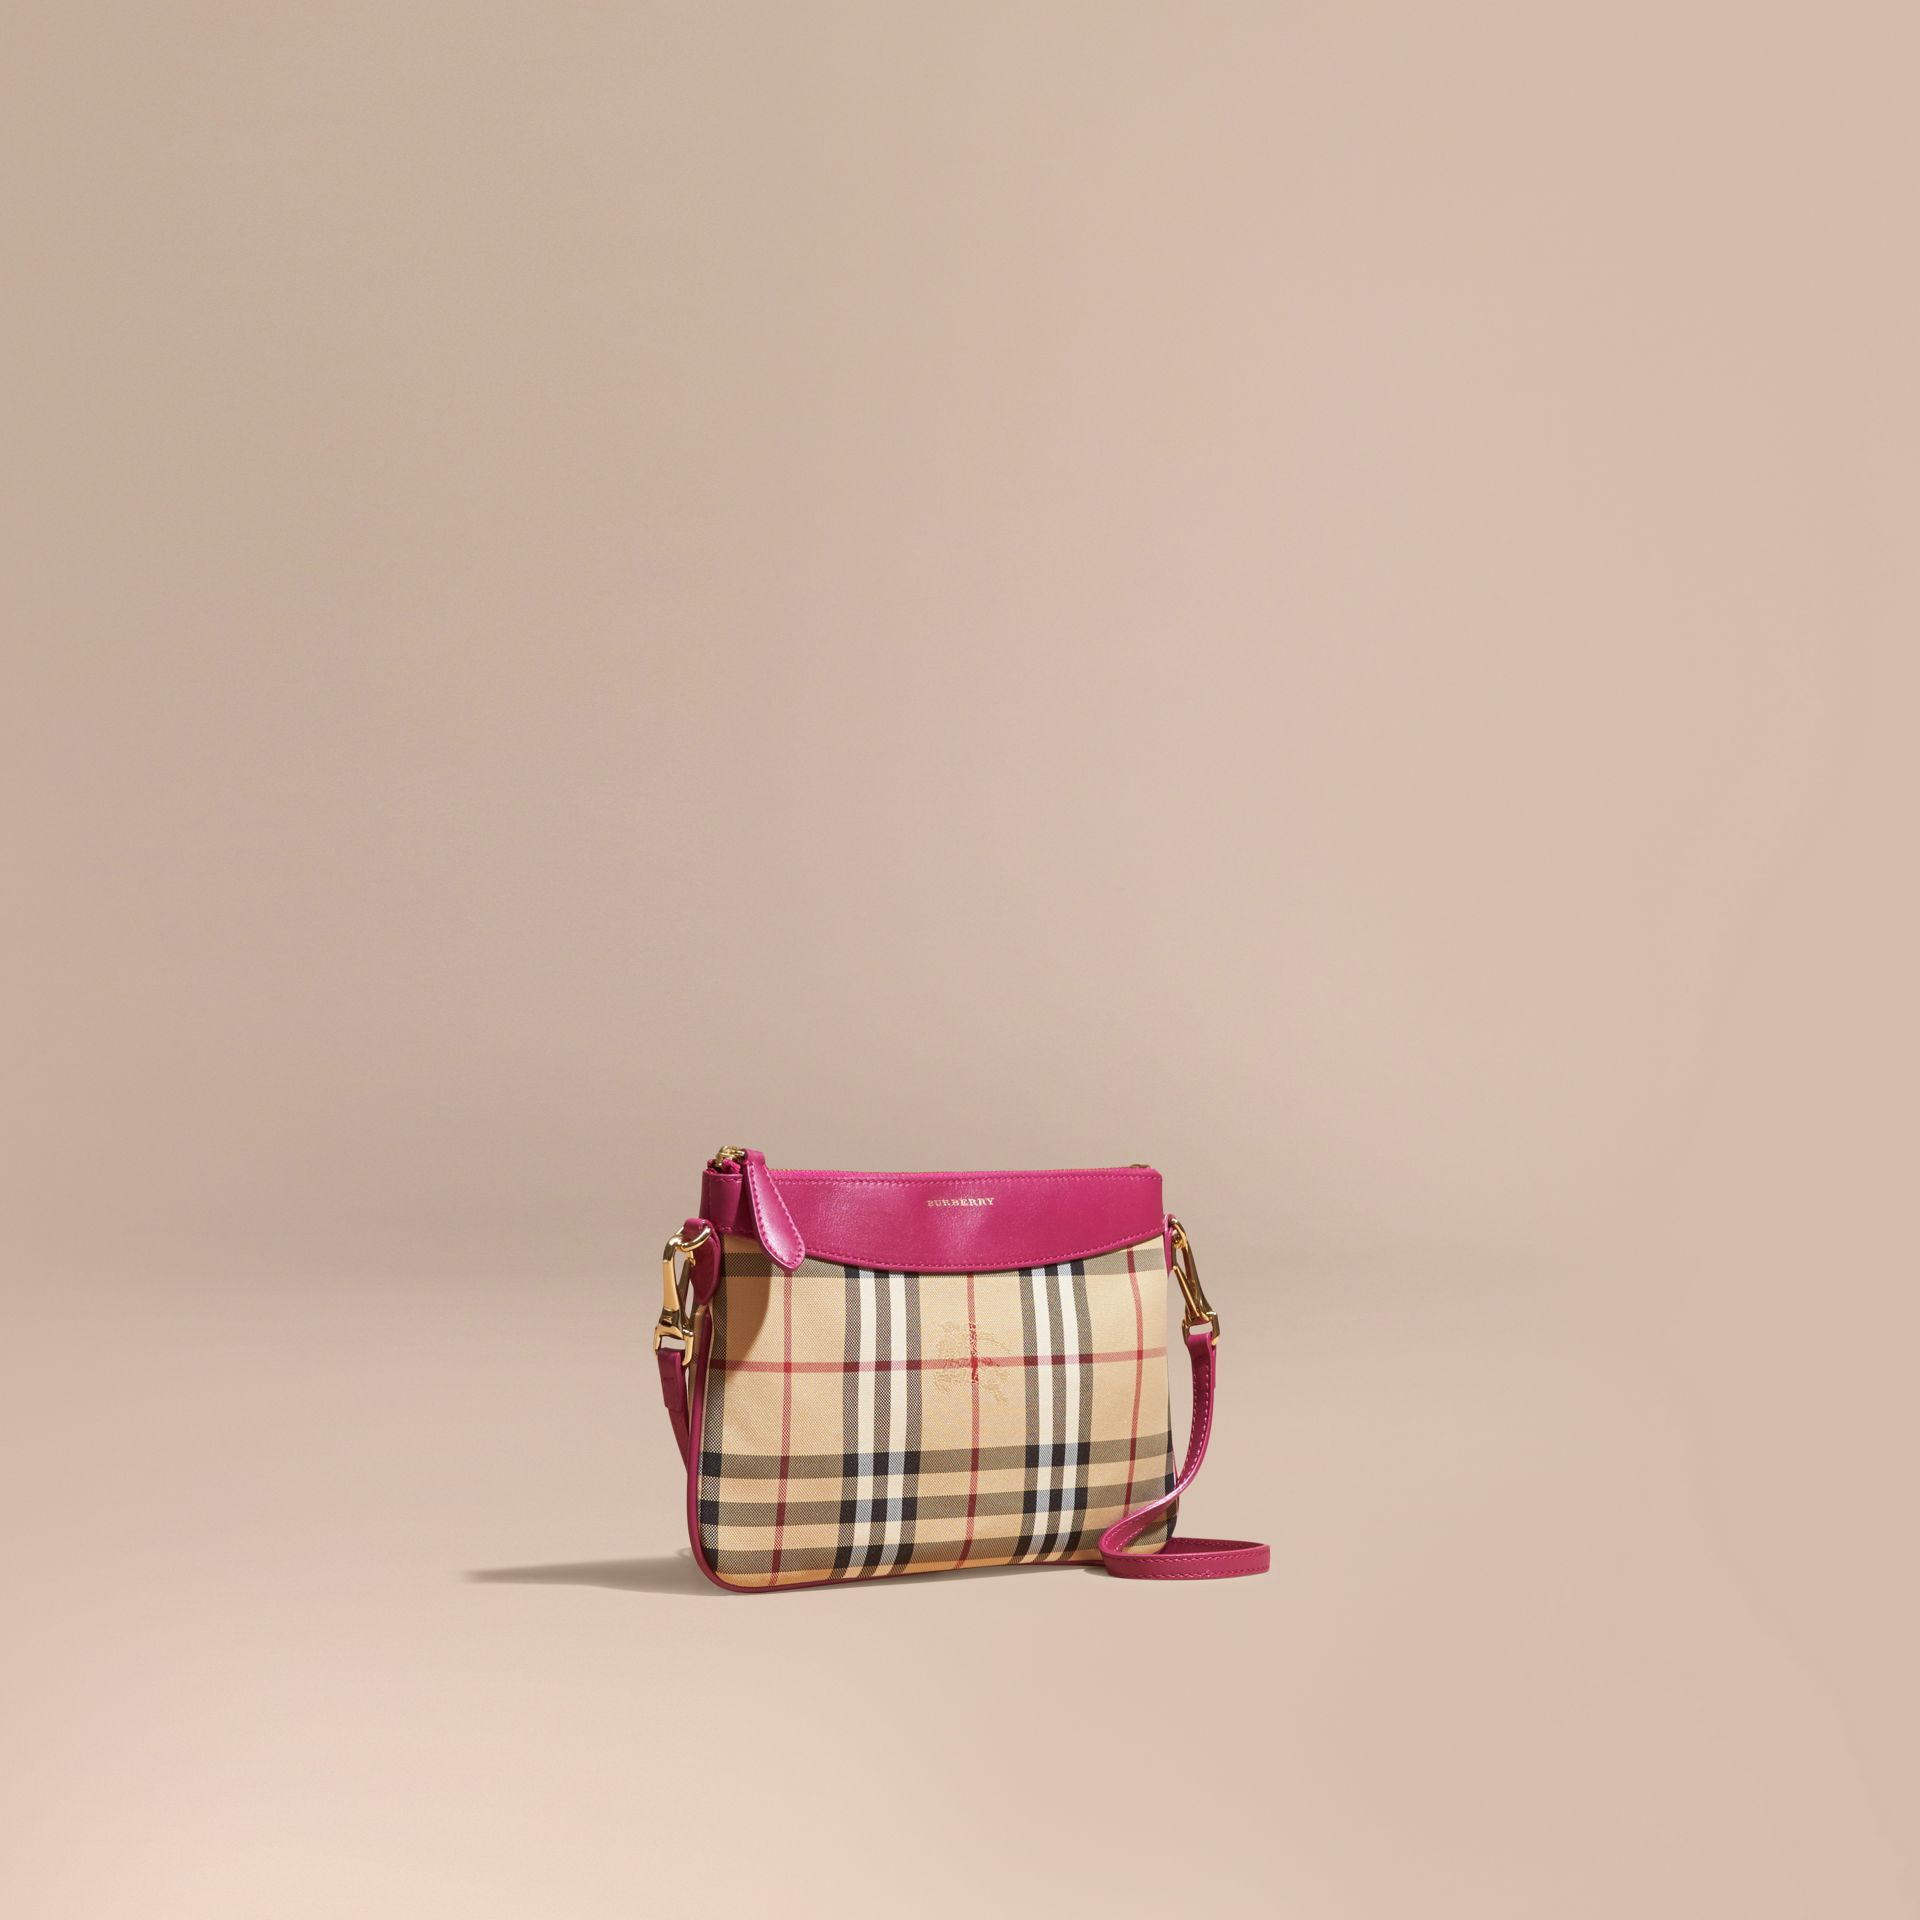 Horseferry Check and Leather Clutch Bag Brilliant Fuchsia - gallery image 1